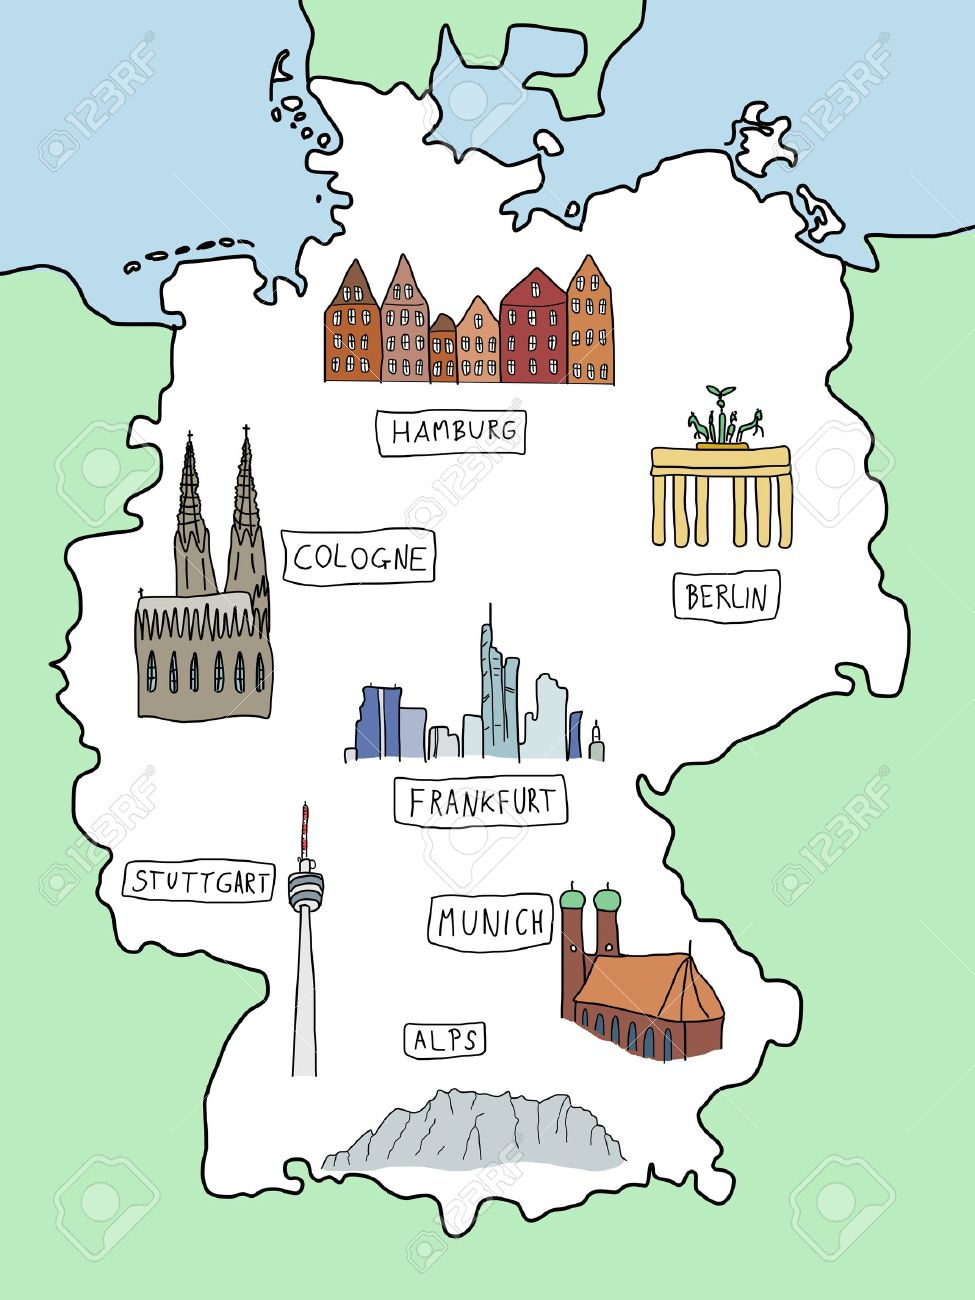 Germany Doodle Map With Famous Places Berlin Hamburg Cologne